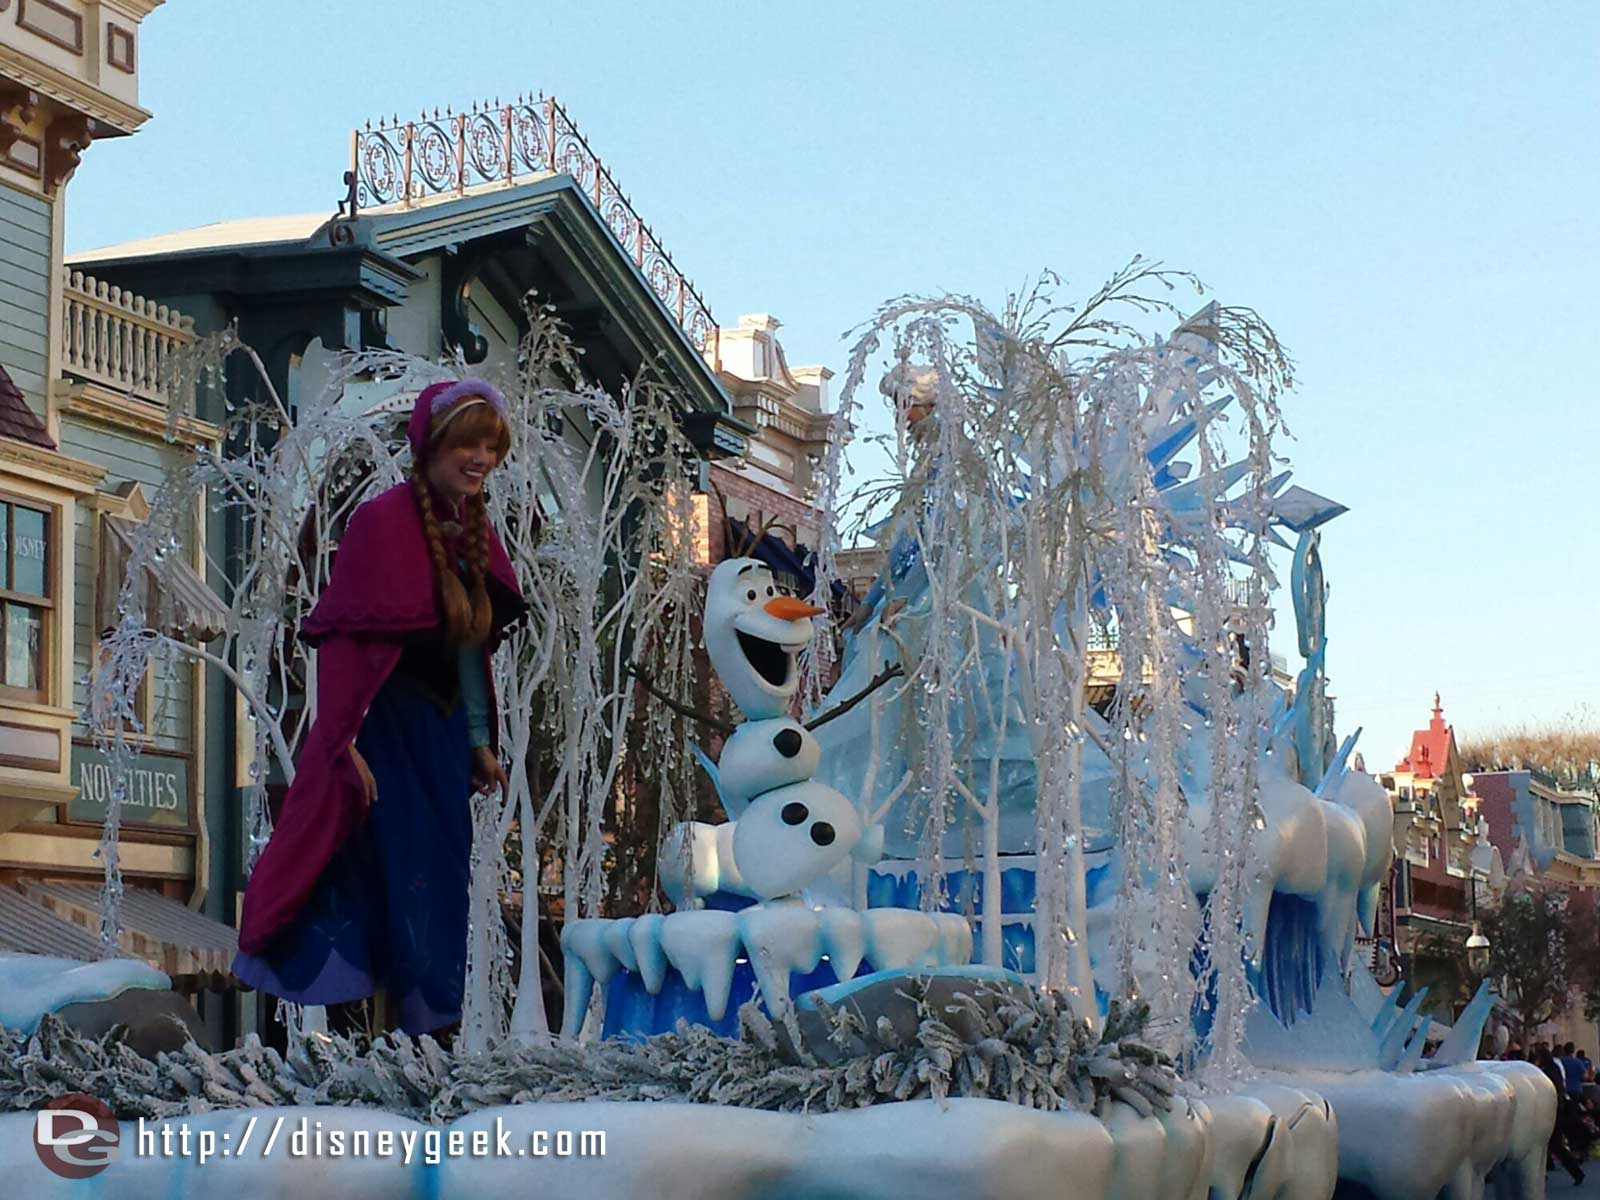 #Frozen pre parade passing by on Main Street USA #Disneyland